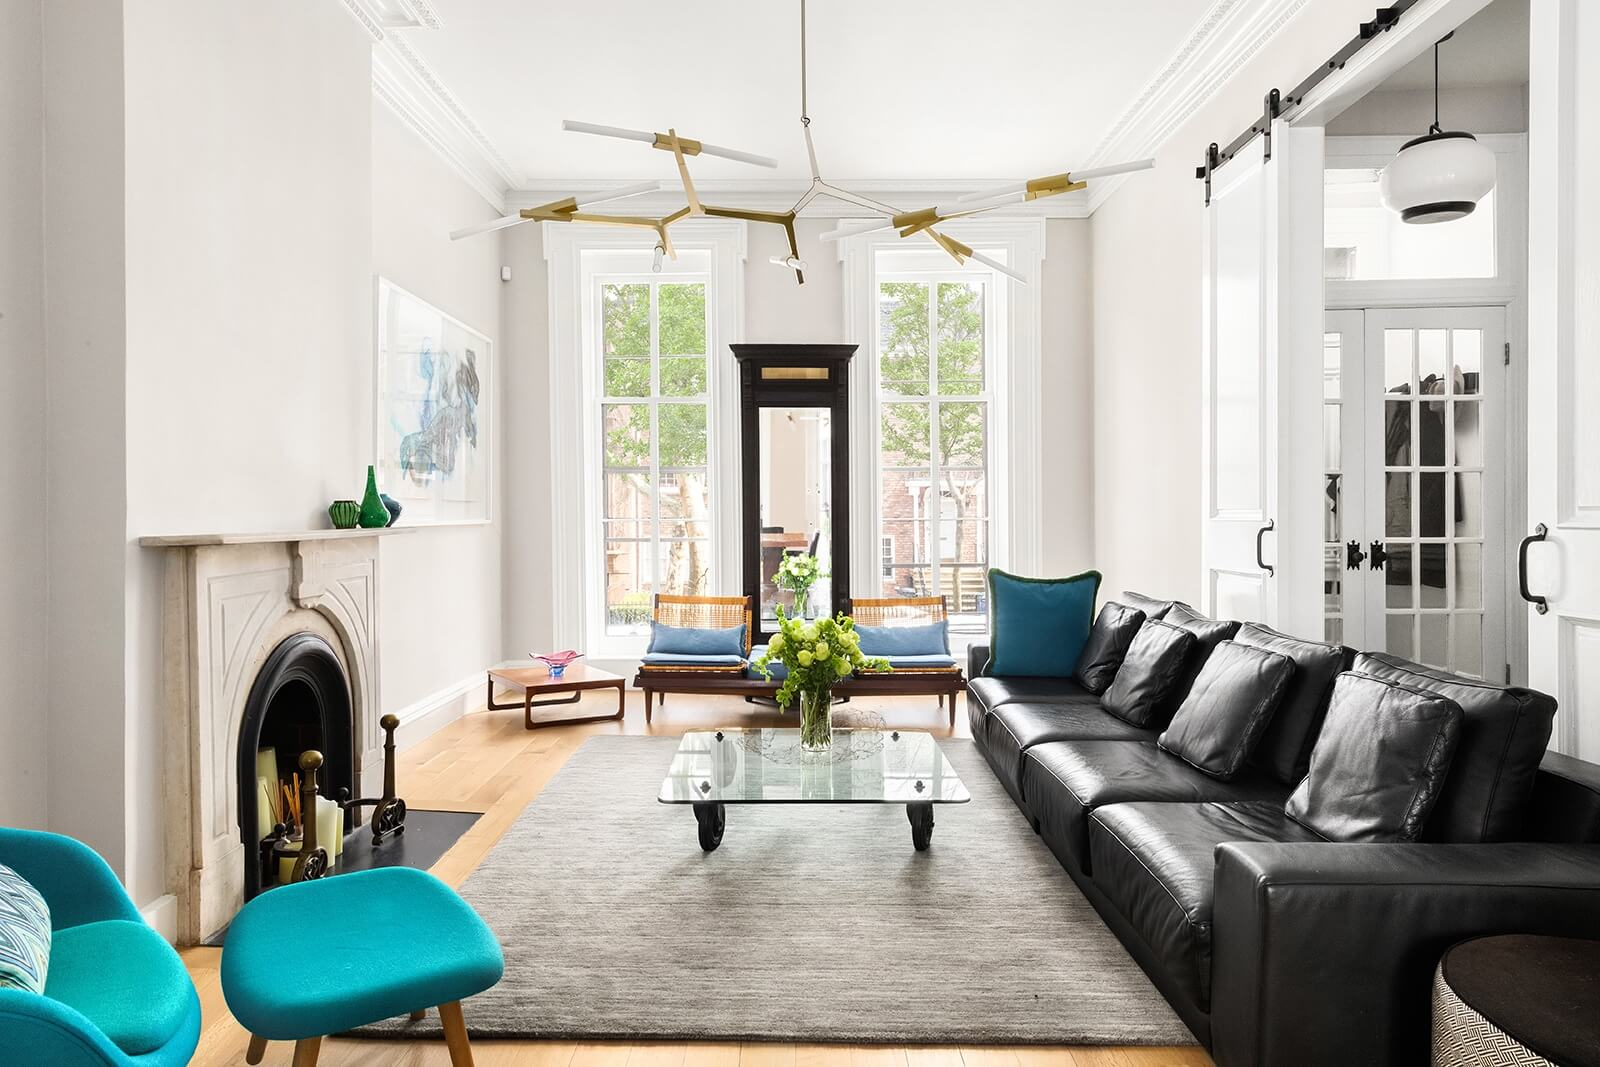 Interior-design-ideas-brooklyn-nvda-cobble-hill